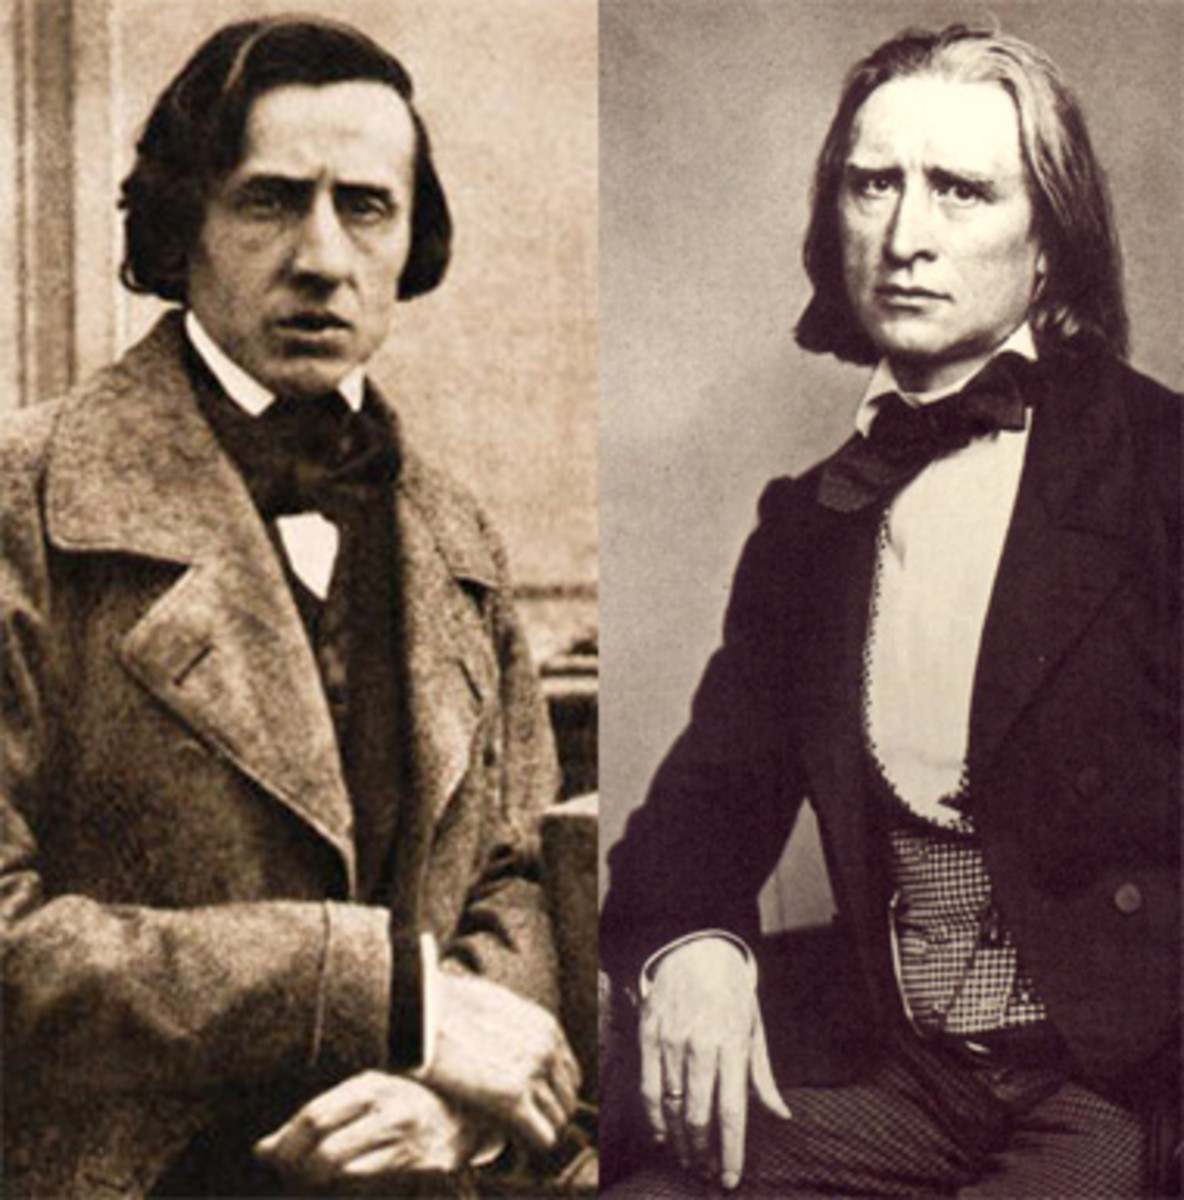 Romantic pianists and composers Chopin and Liszt, revolutionized the Etude